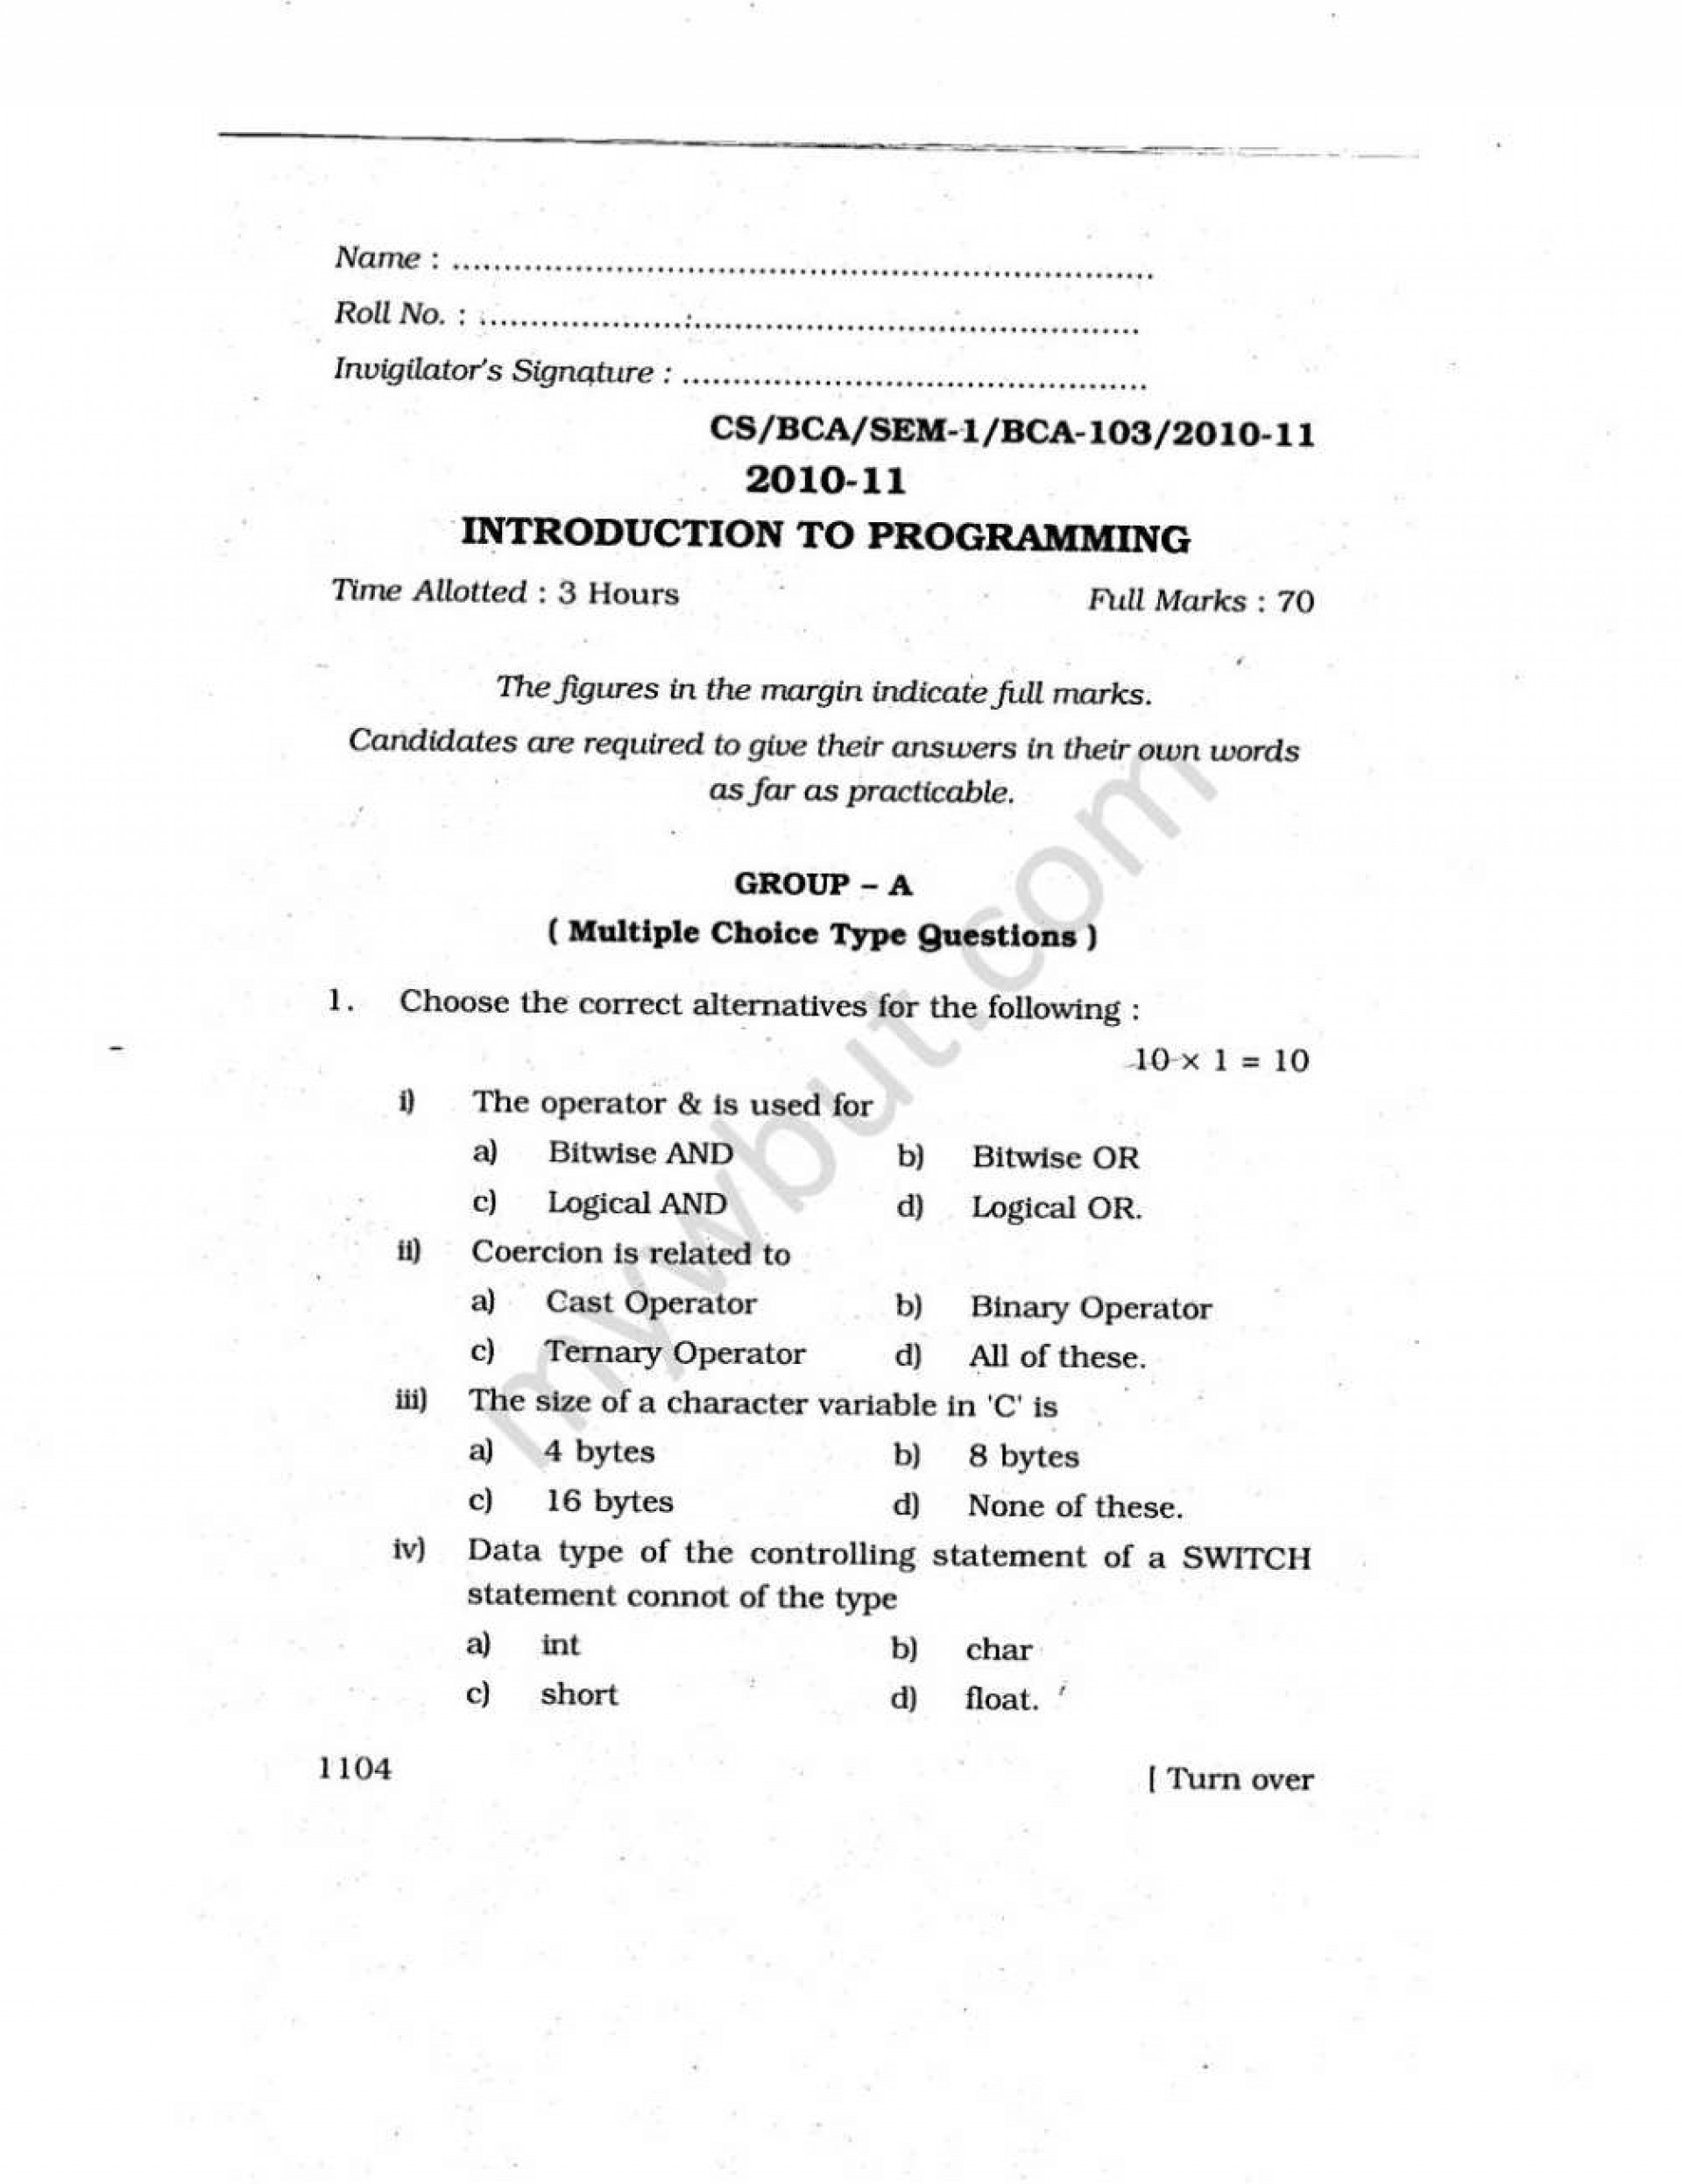 023 How To Write Scientific Research Paper Pdf Wbutst Sem Introduction Programming Previous Year S Question Papers Sensational And Publish A Computer Science 1920